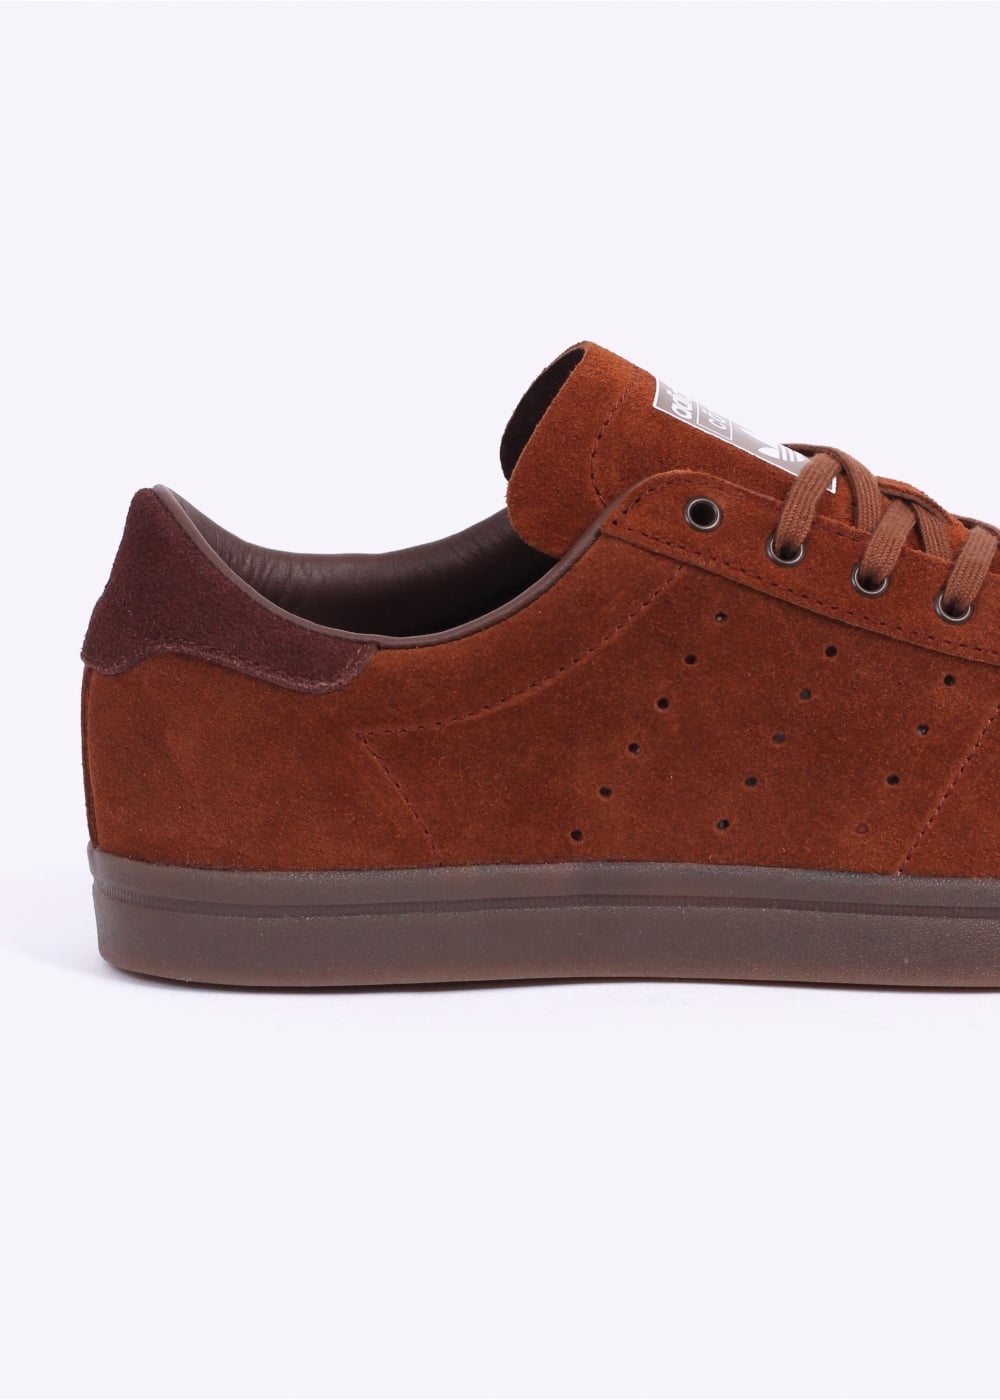 huge selection of 9e90c 0e2d7 SPZL Cote Trainers - Brown  Simple Brown